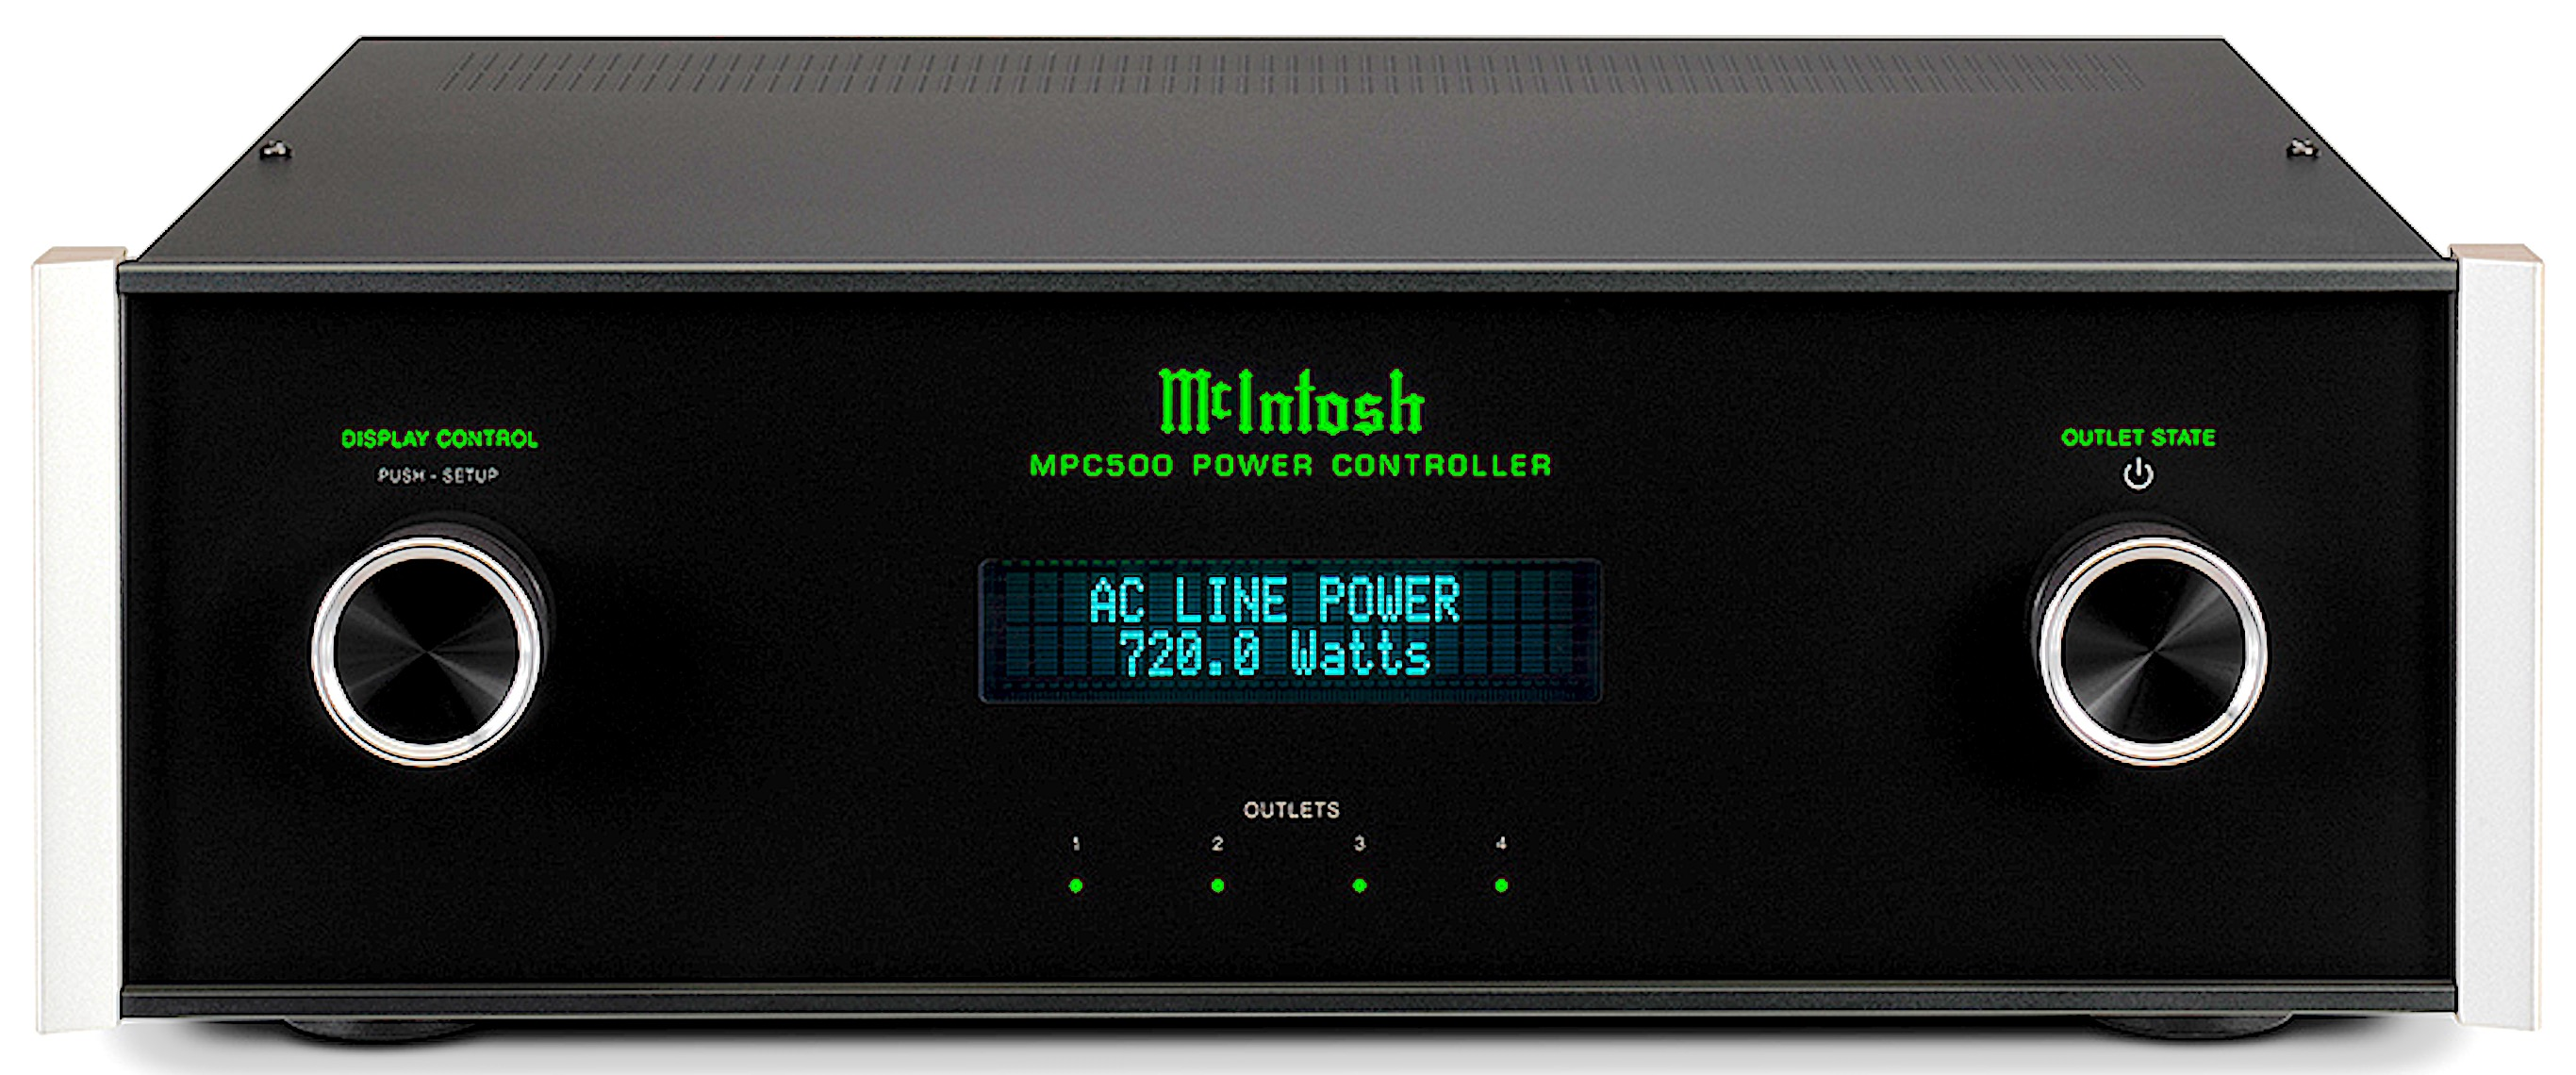 MPC500 Power Controller From McIntosh